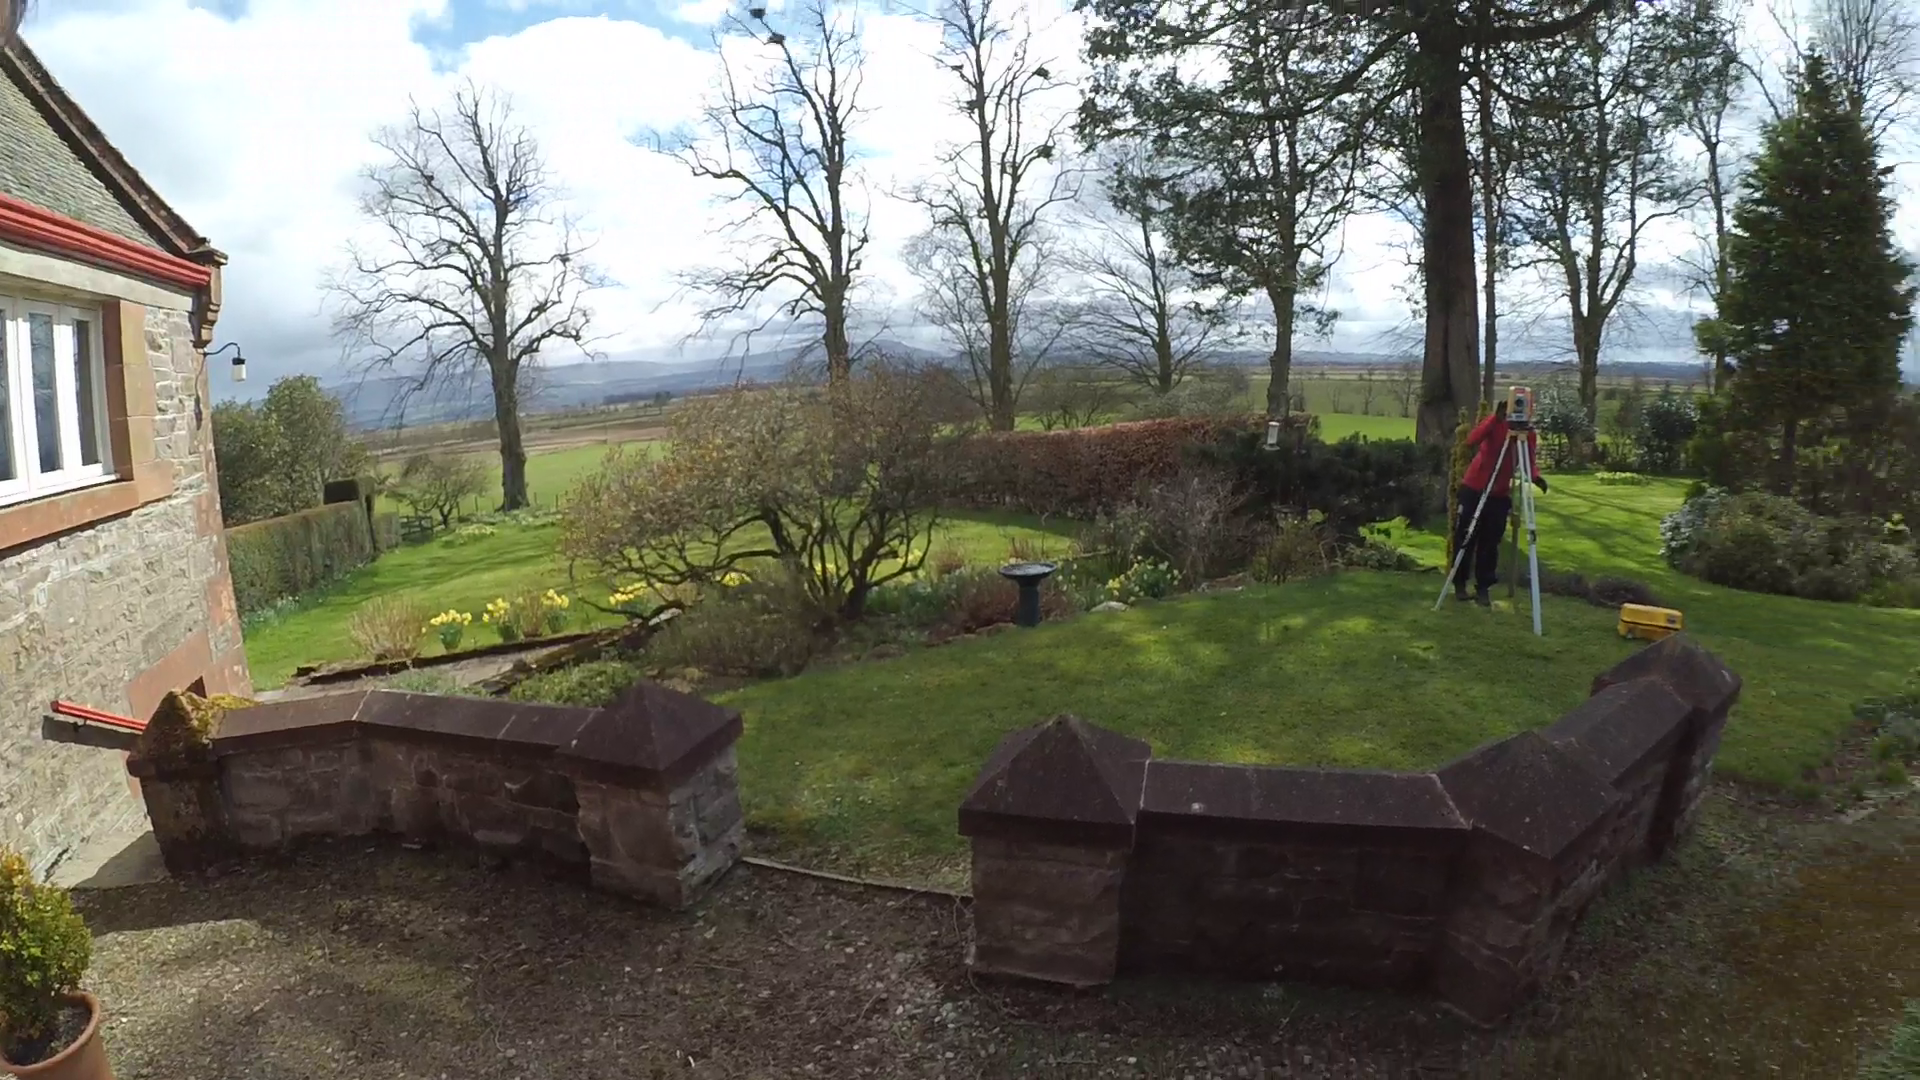 Sometimes you just can beat survey life. This is a still taken from a sunny March morning in a beautiful setting. Our client was planning to do a complete overhaul of their garden, starting with a topographical survey to enable their architect to put together some design proposals.  The .dxf and mesh models were then used for planning the new garden design in Trimble Sketchup...